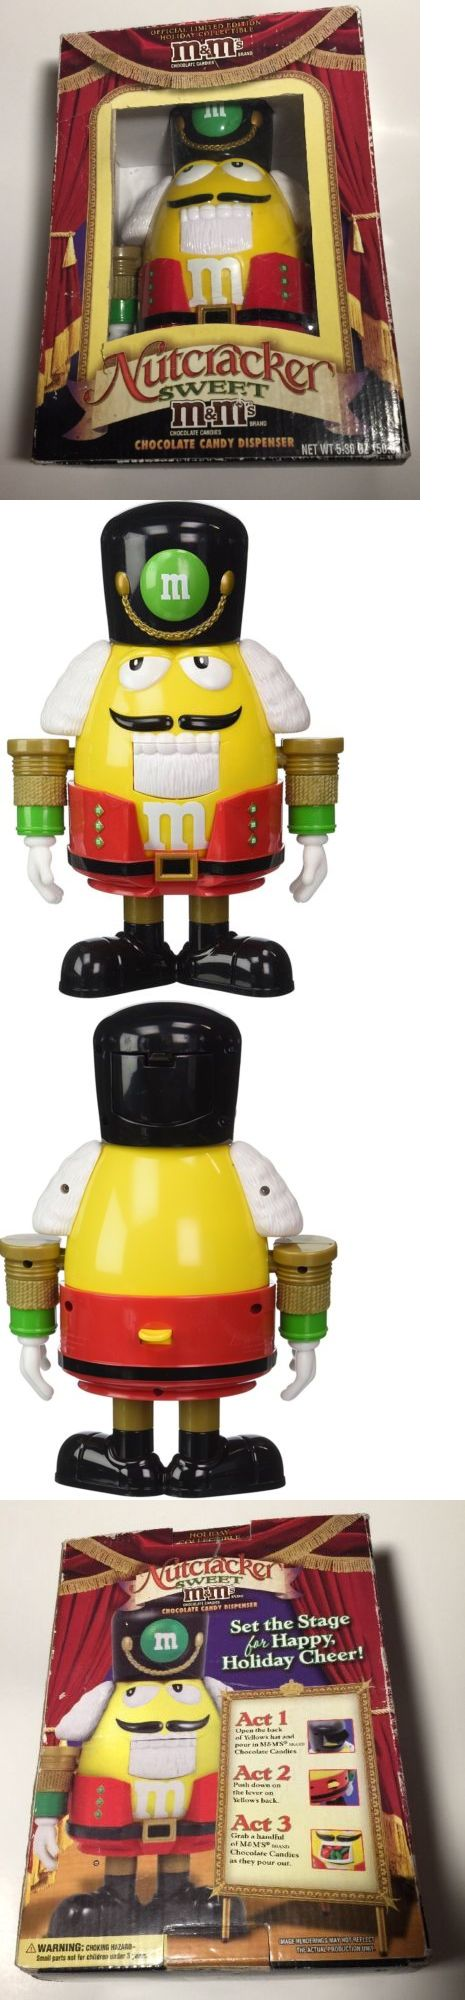 Nutcrackers 177743: Mandm Official Limited Edition Nutcracker Sweet Candy Dispenser - Fast Shipping! -> BUY IT NOW ONLY: $34.99 on eBay!